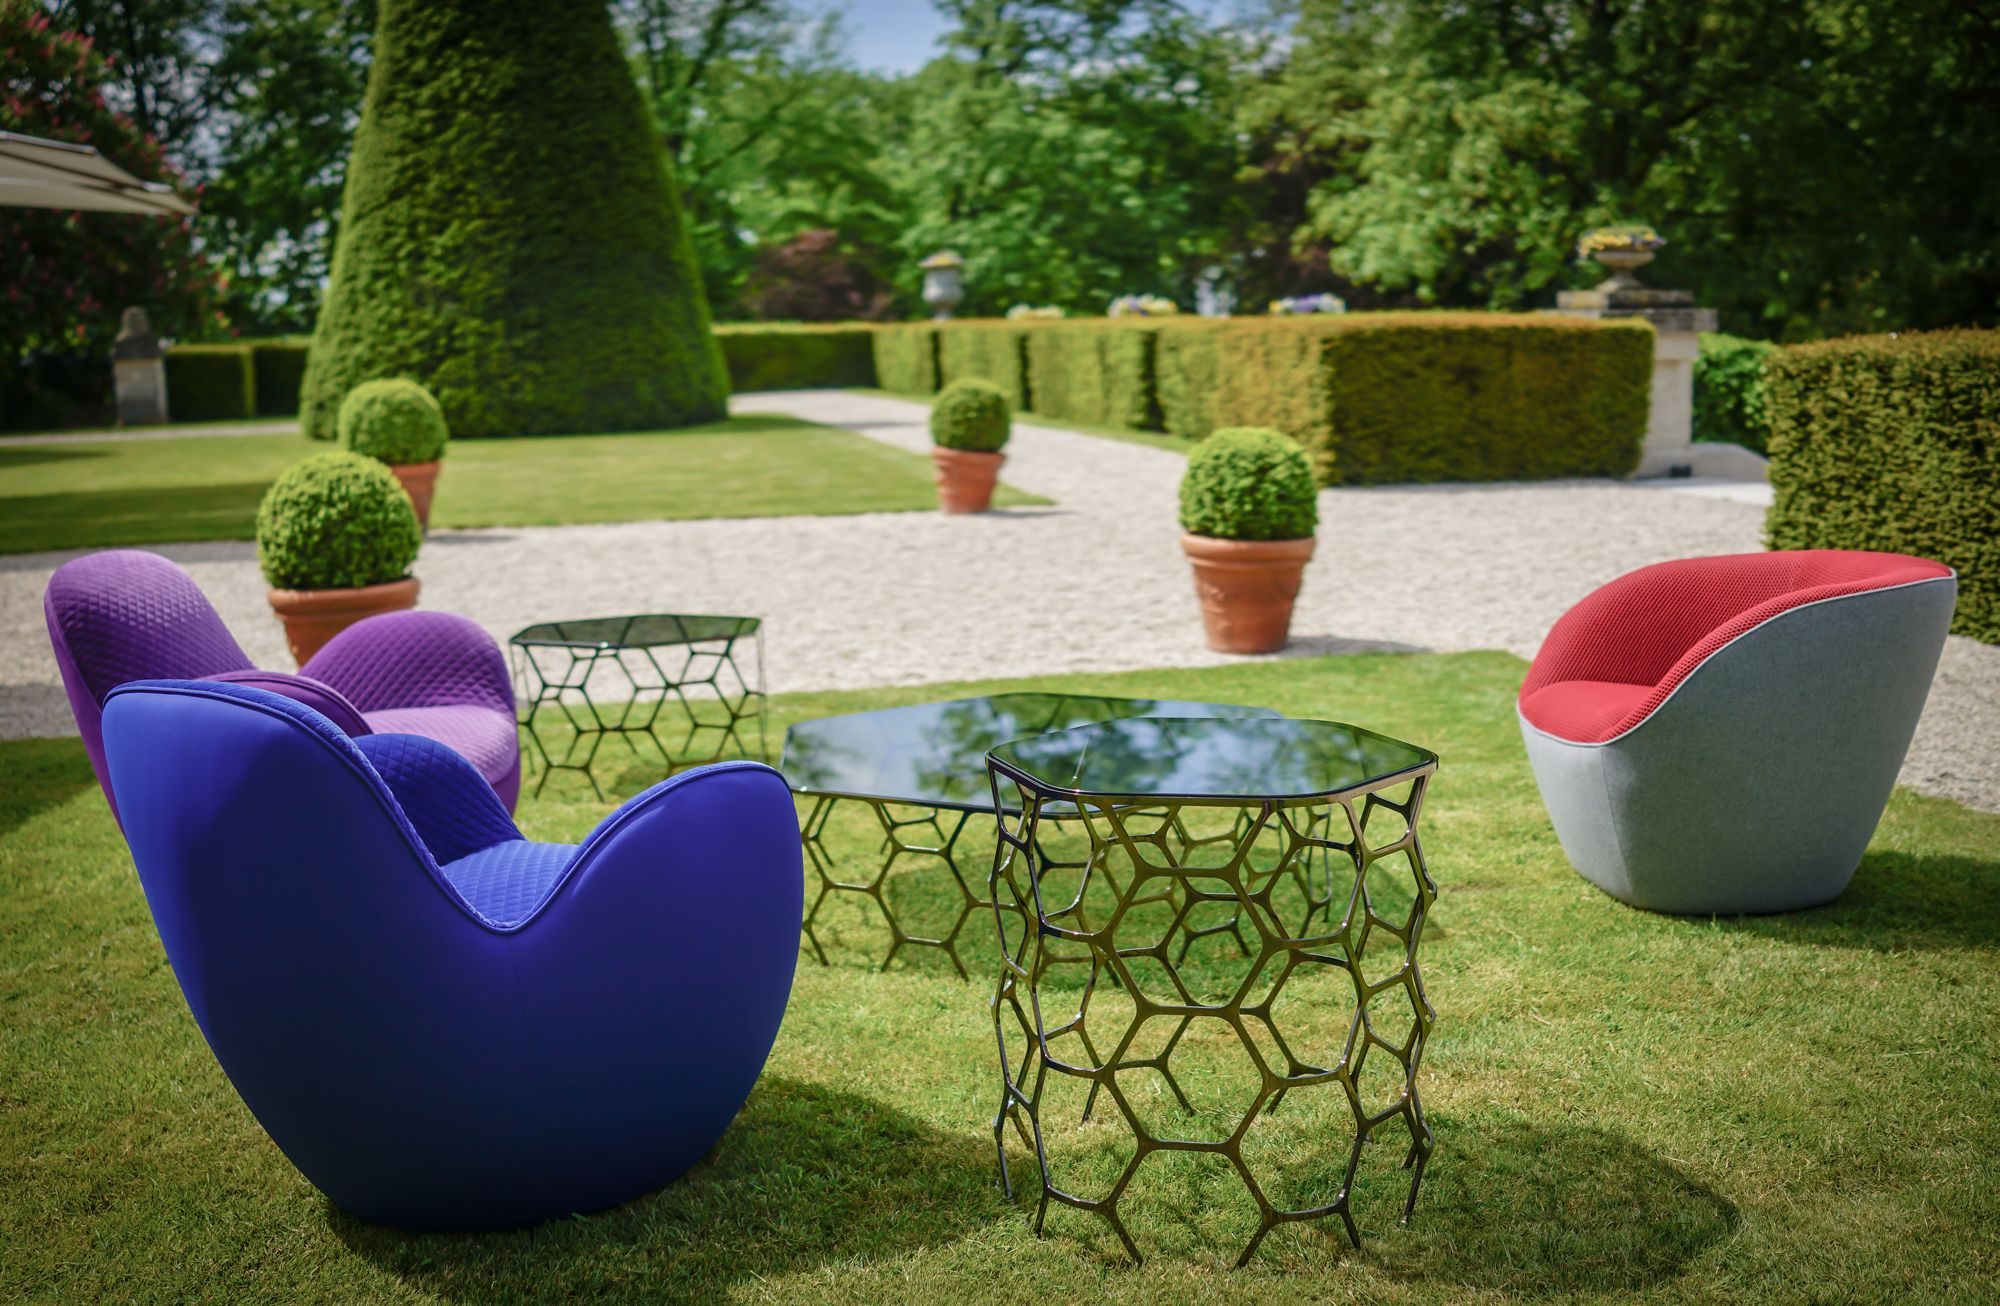 Sacha Lakic The Aircell Edito Armchairs And The Pollen Table Collection Domaine Les Crayeres Reims C Sachalakic Sachalakic R Sillones Sillas